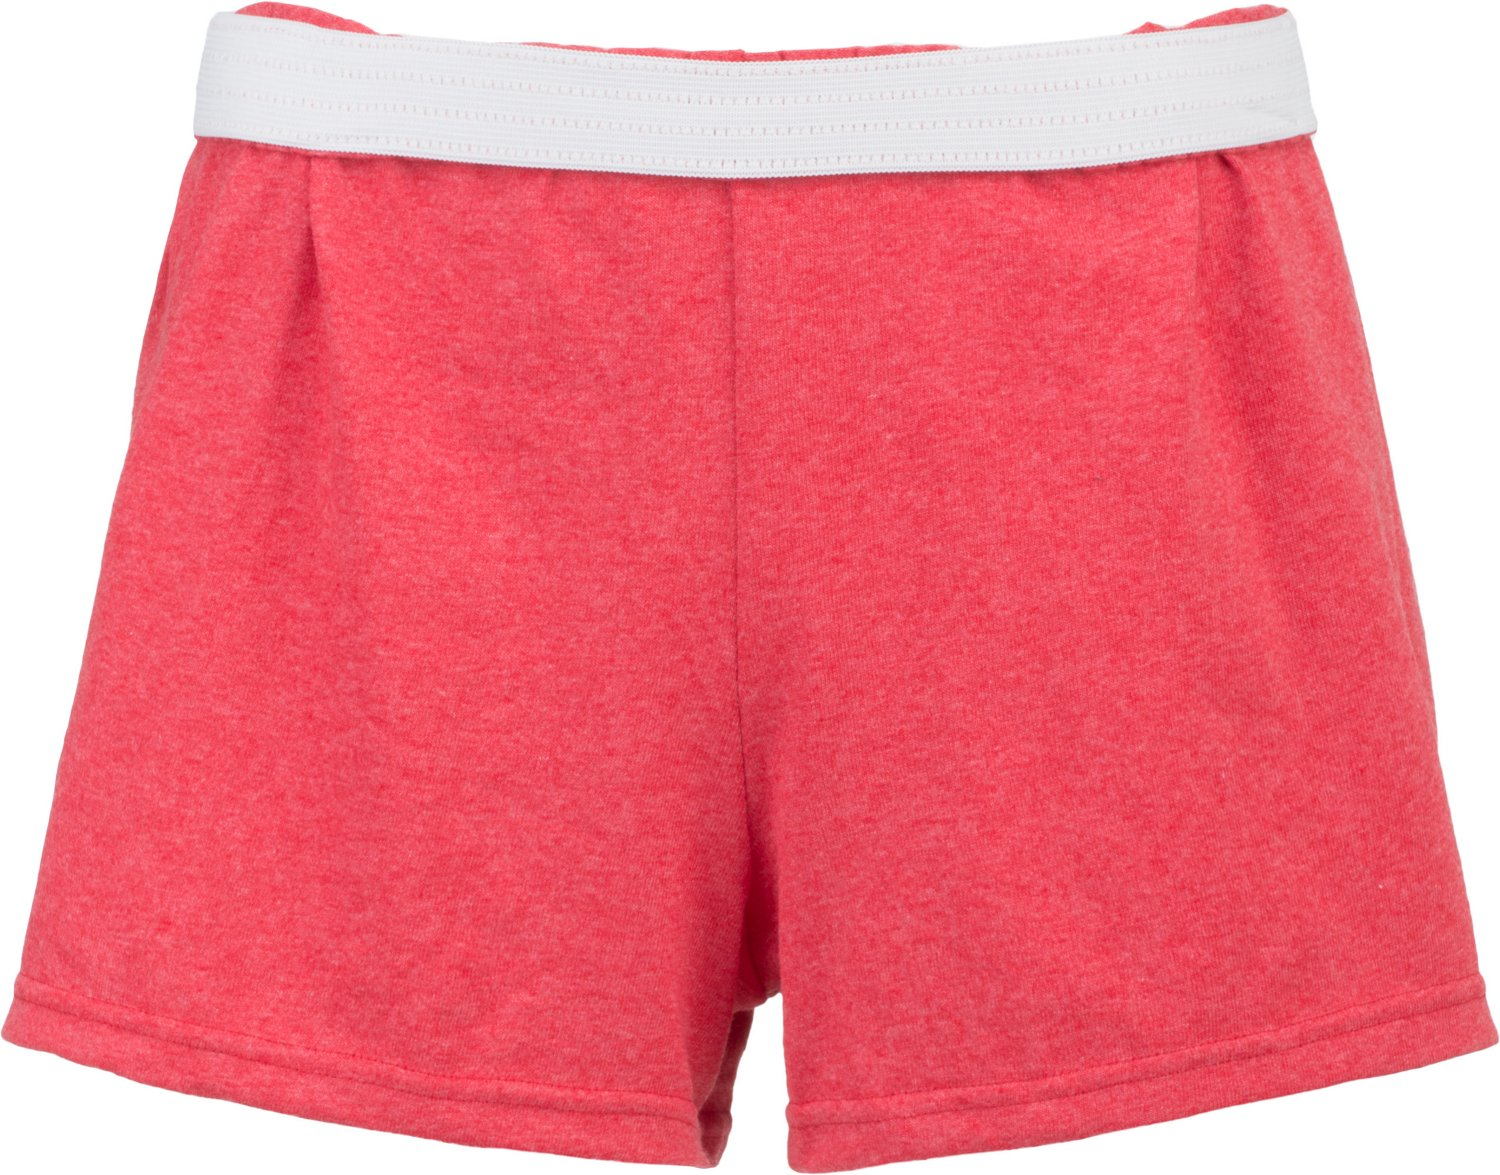 Display Product Reviews For Soffe Women S Authentic Athletic Performance Short